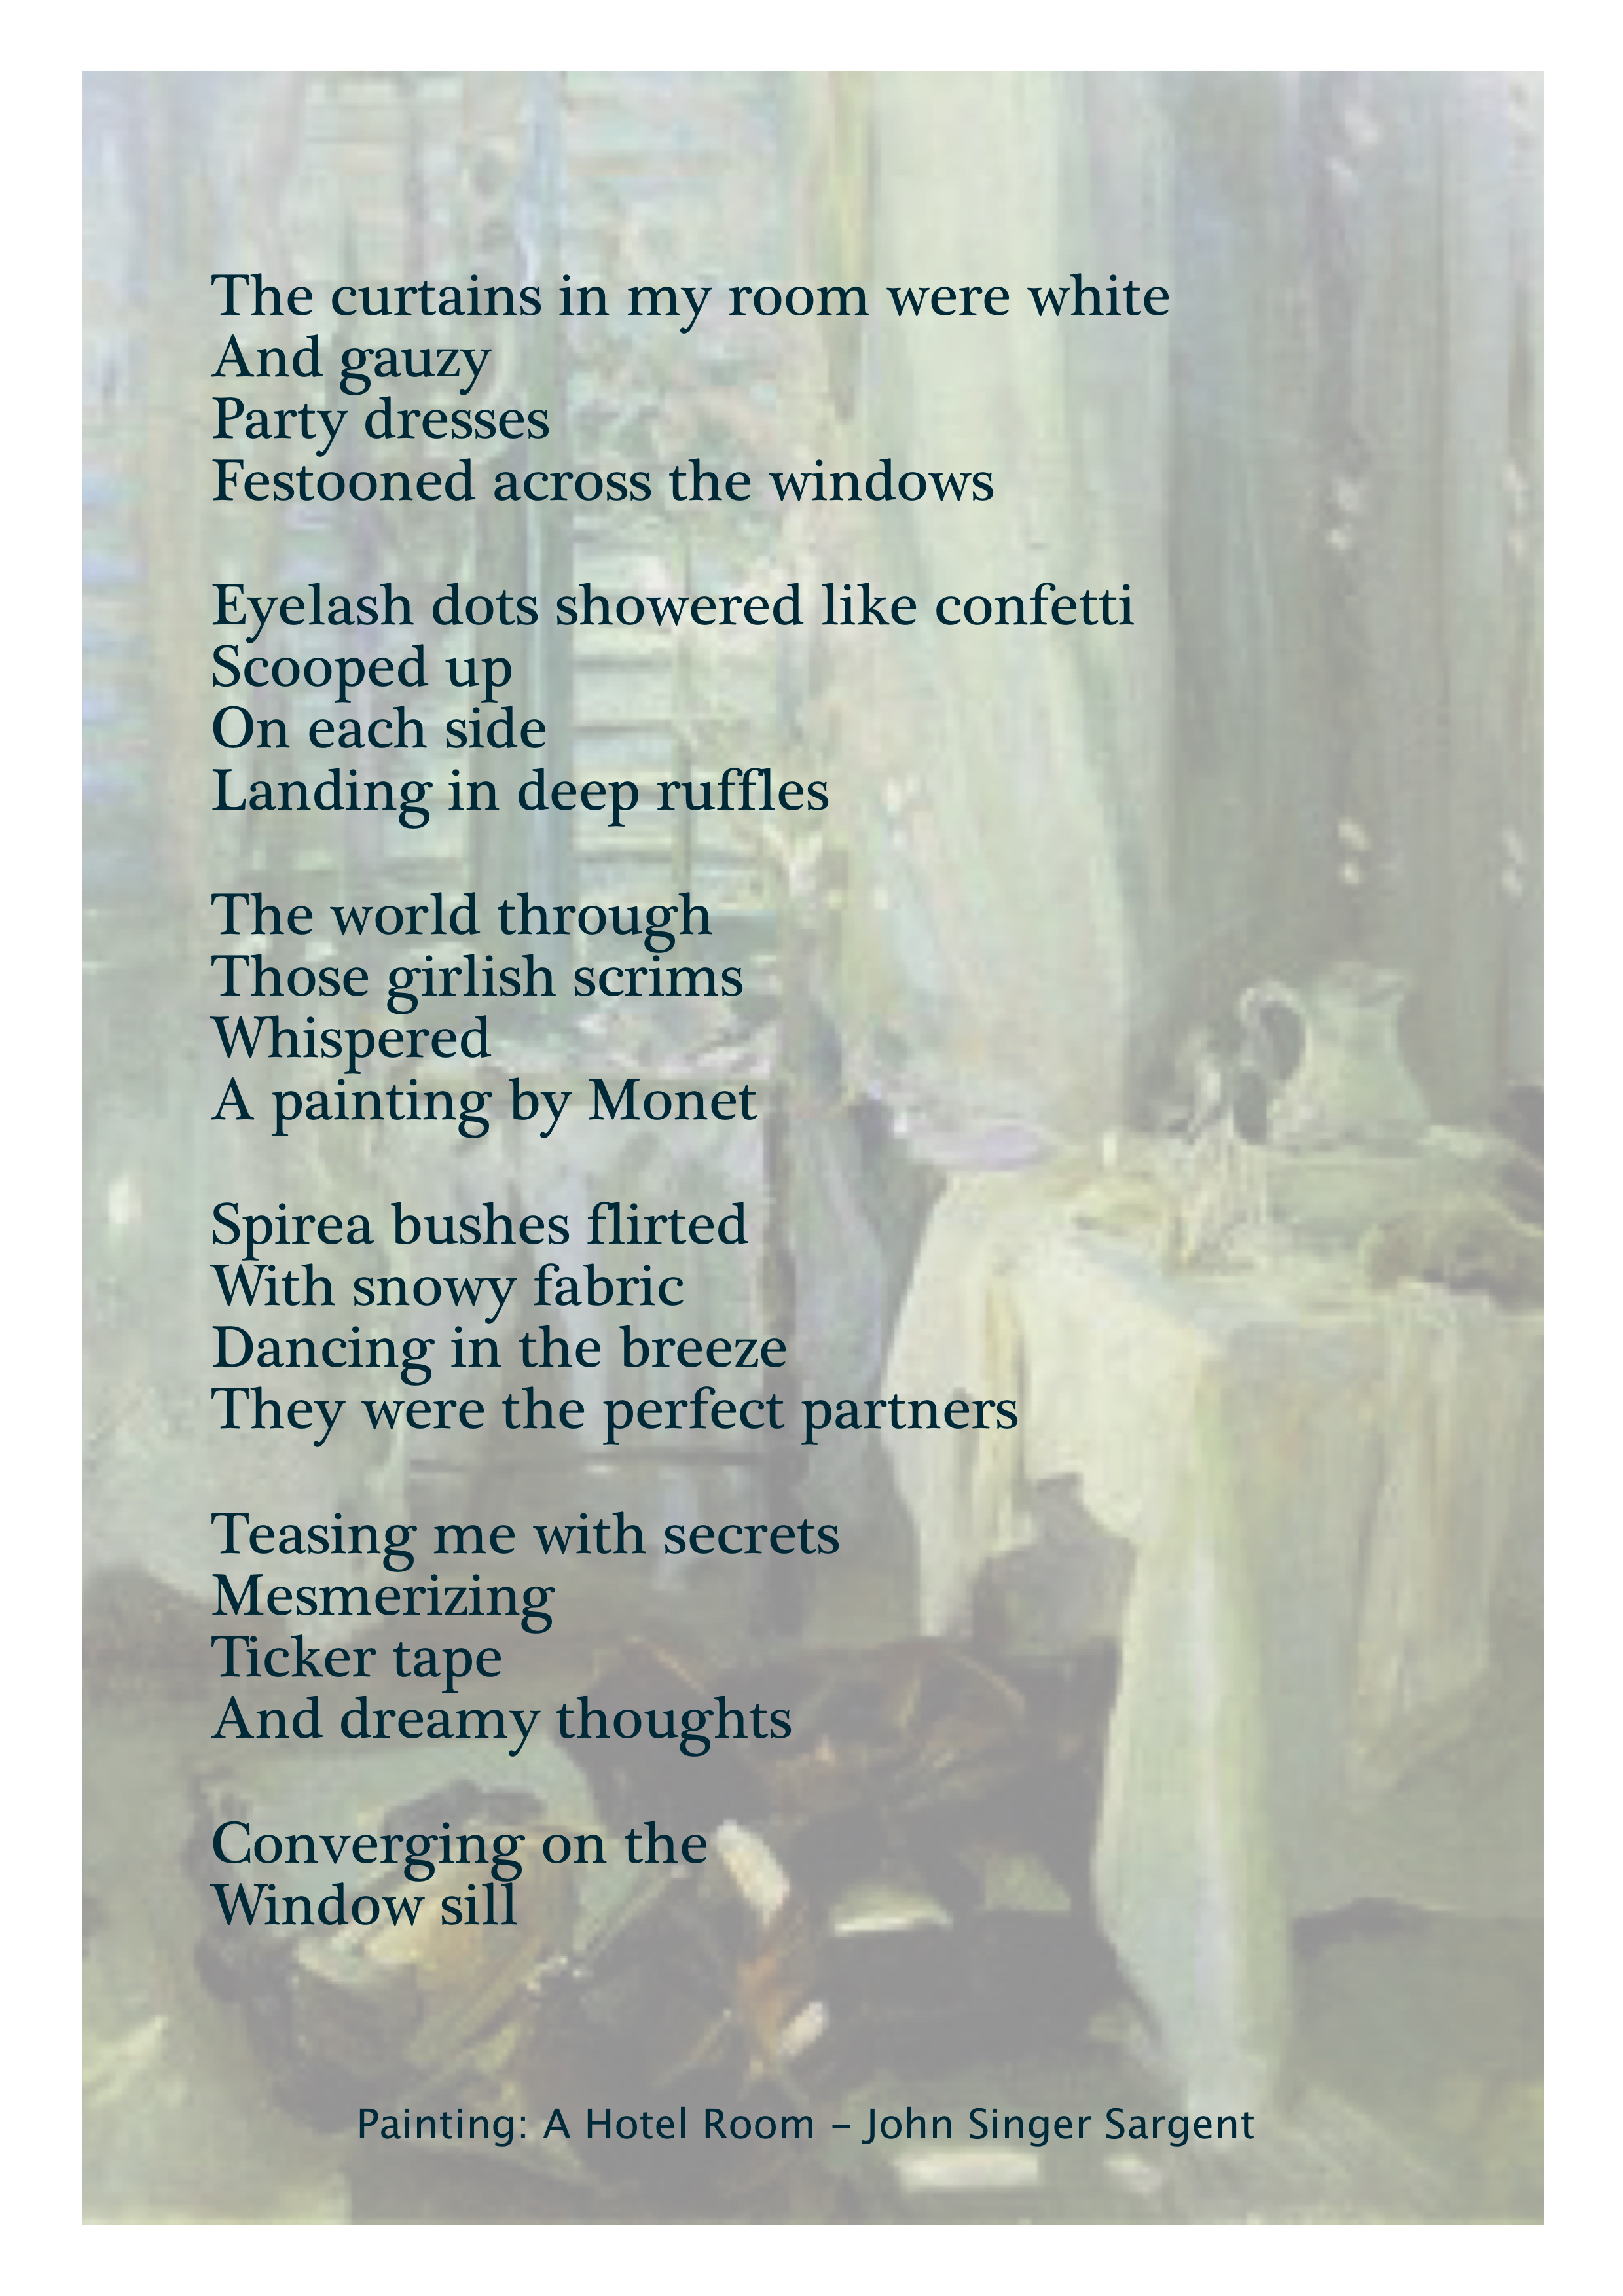 Curtains - Image and Poem.jpg